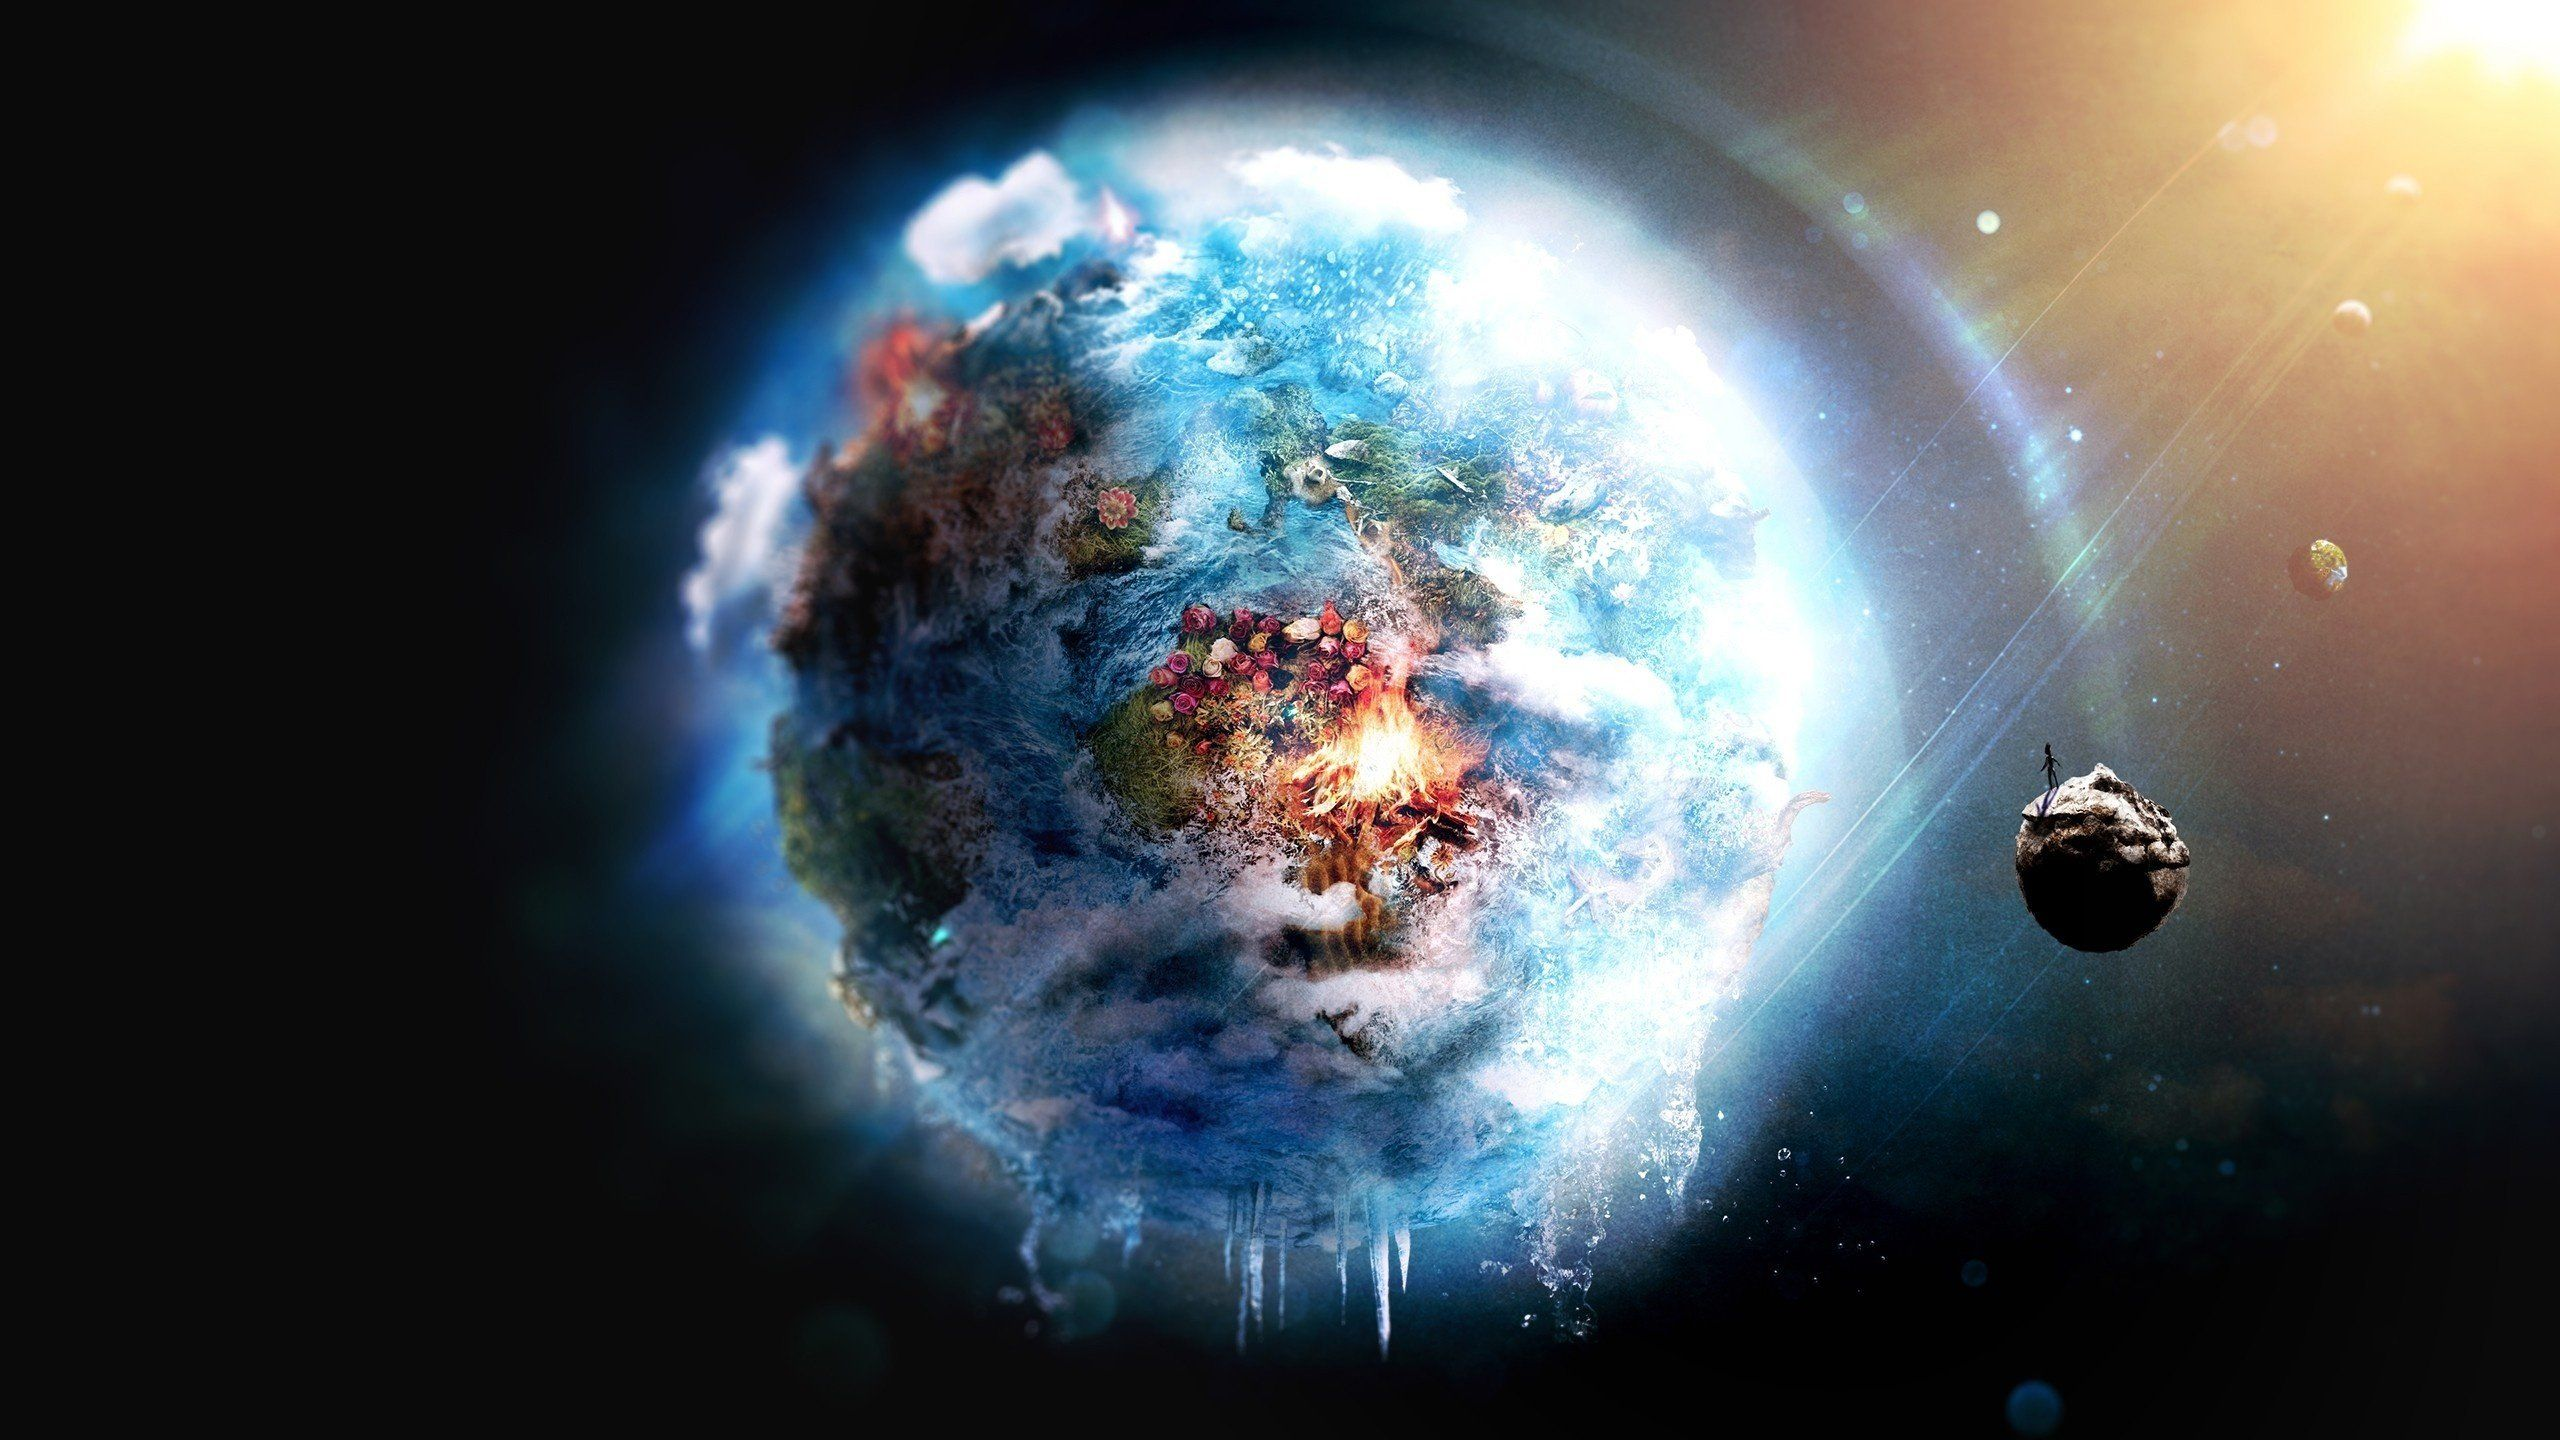 Future Earth Wallpaper HD Download For Desktop And Mobile